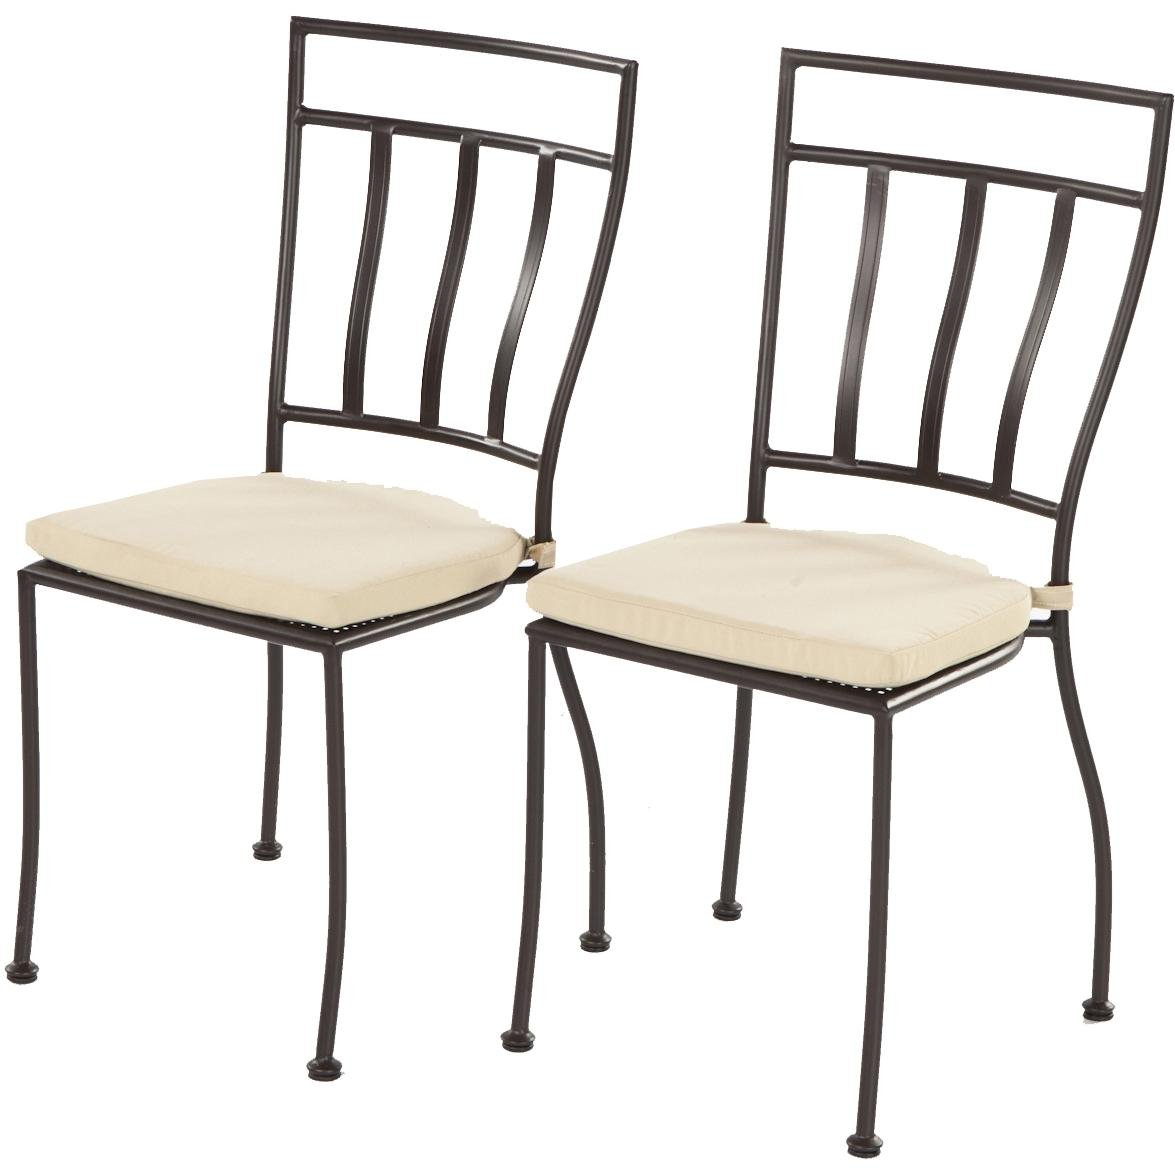 Amazon.com : Alfresco Home Semplice Wrought Iron Bistro Chairs With Natural  Cushions, Charcoal, Set Of Two : Dining Chairs : Garden U0026 Outdoor